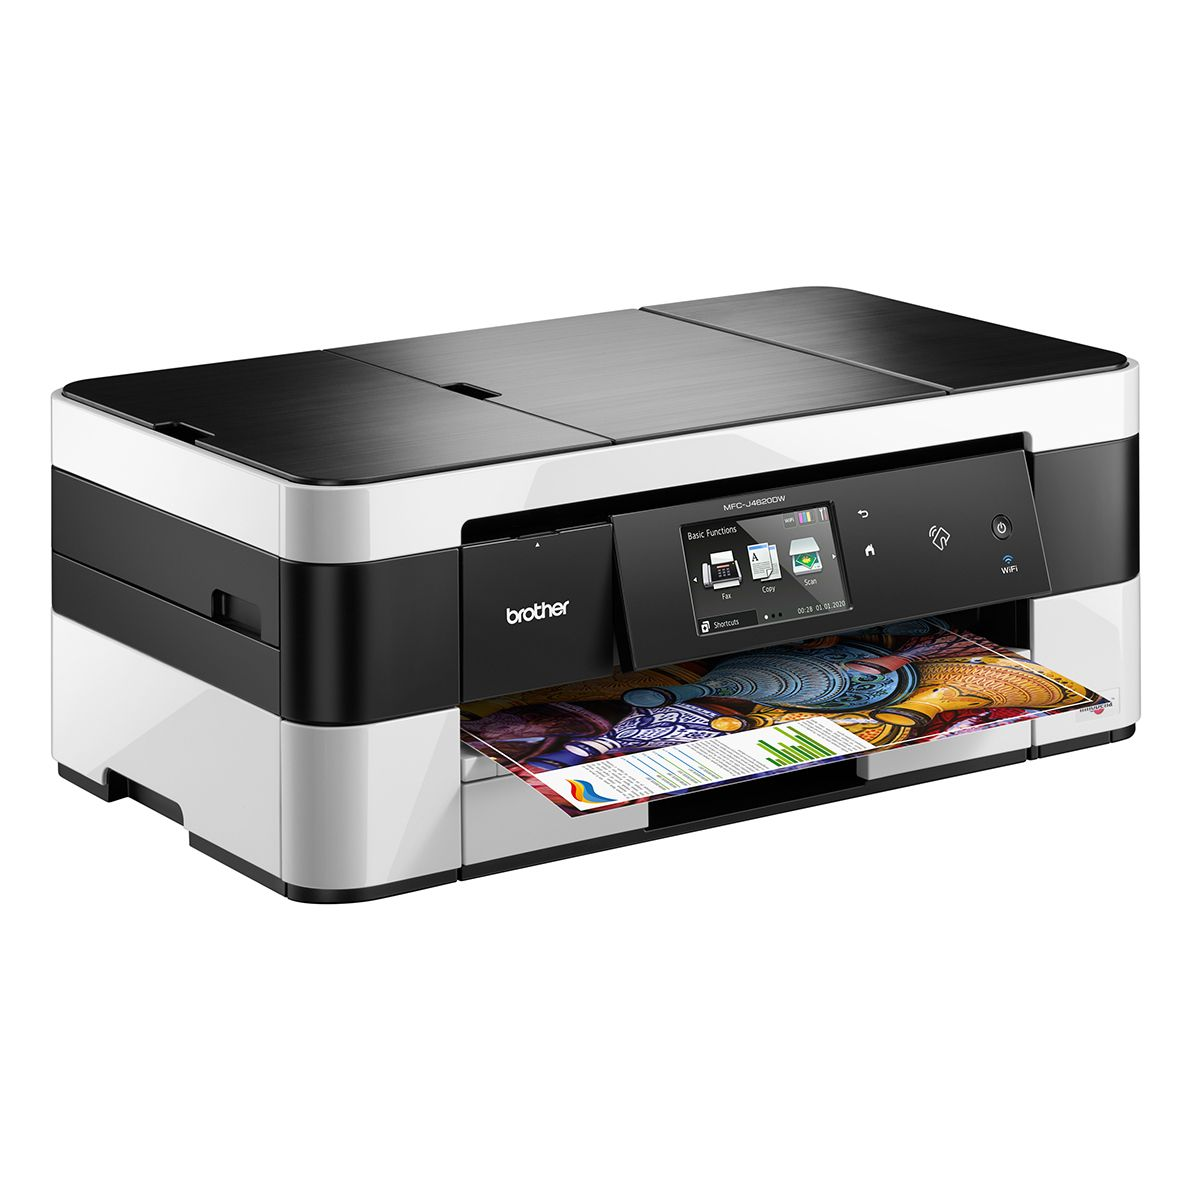 Brother DCP-J4120DW All-in-One Printer review